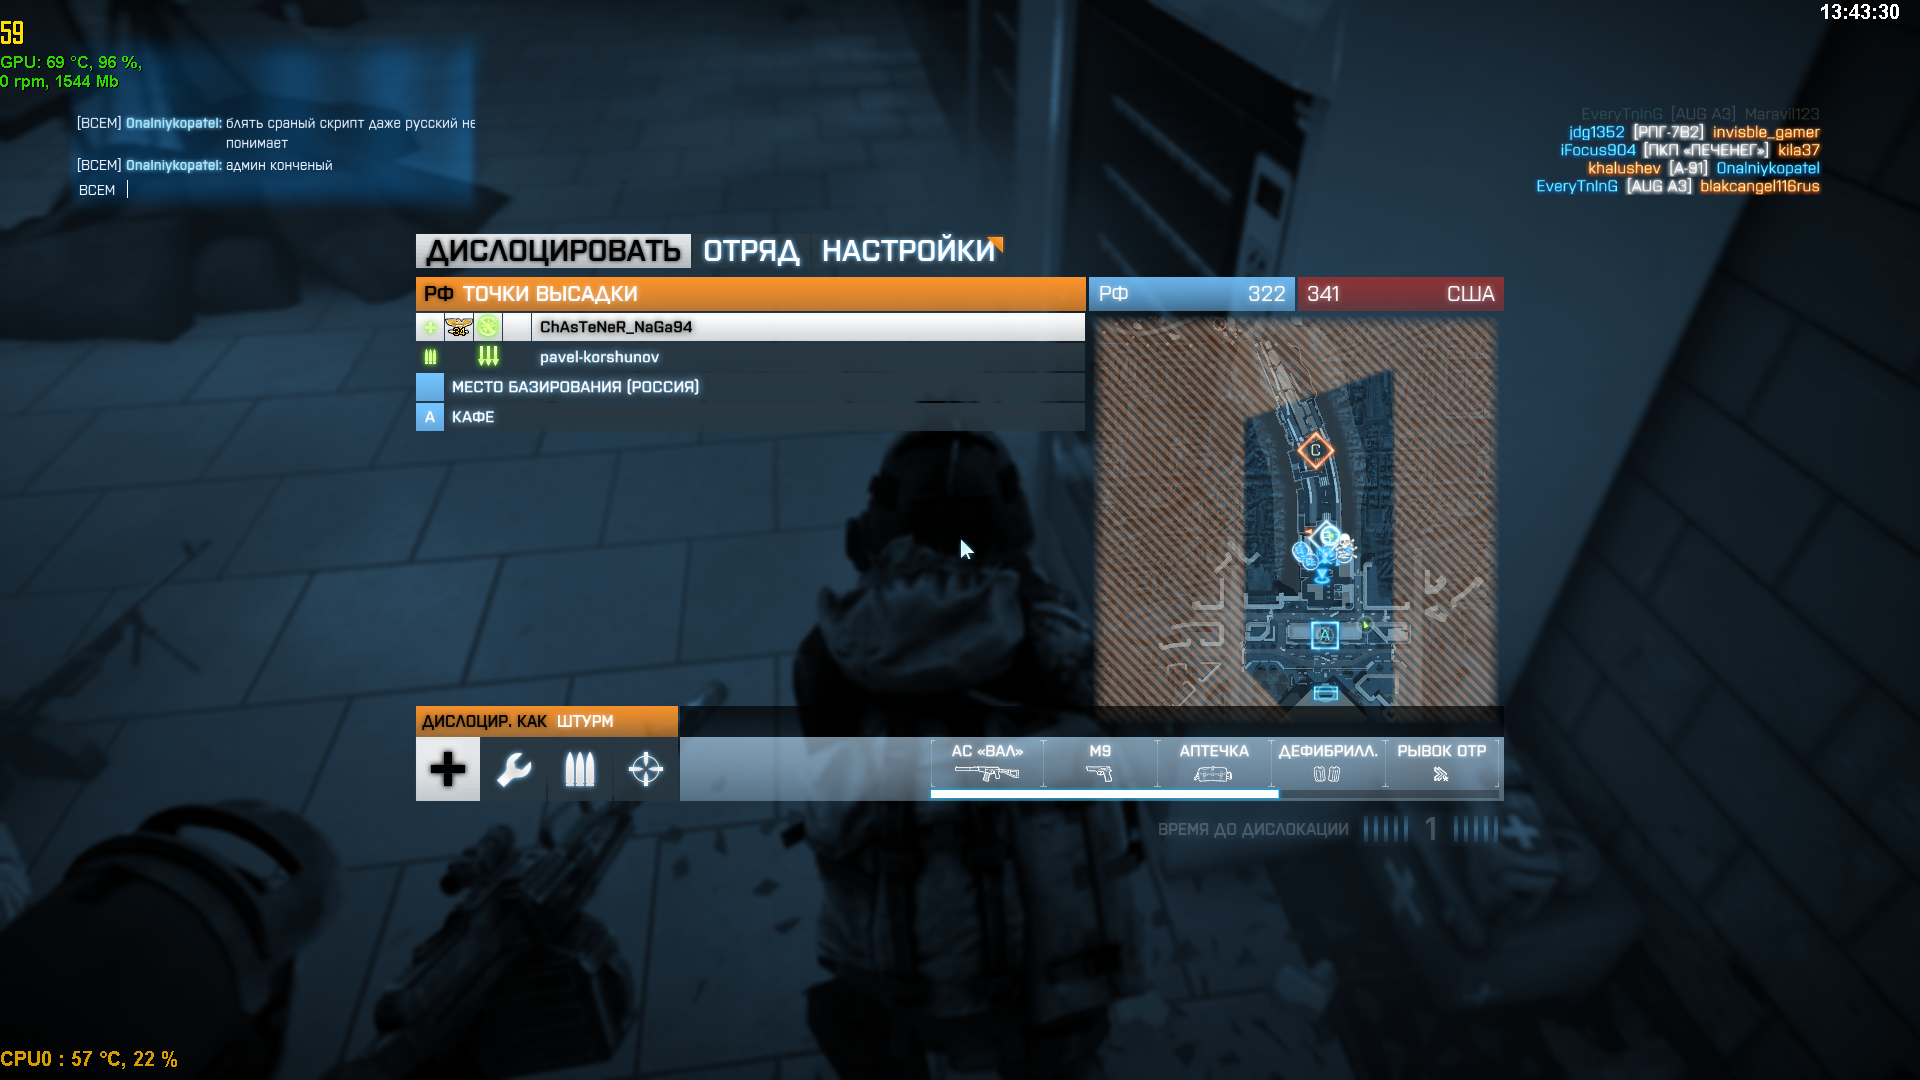 bf3_2014-11-30_13-43-30.png